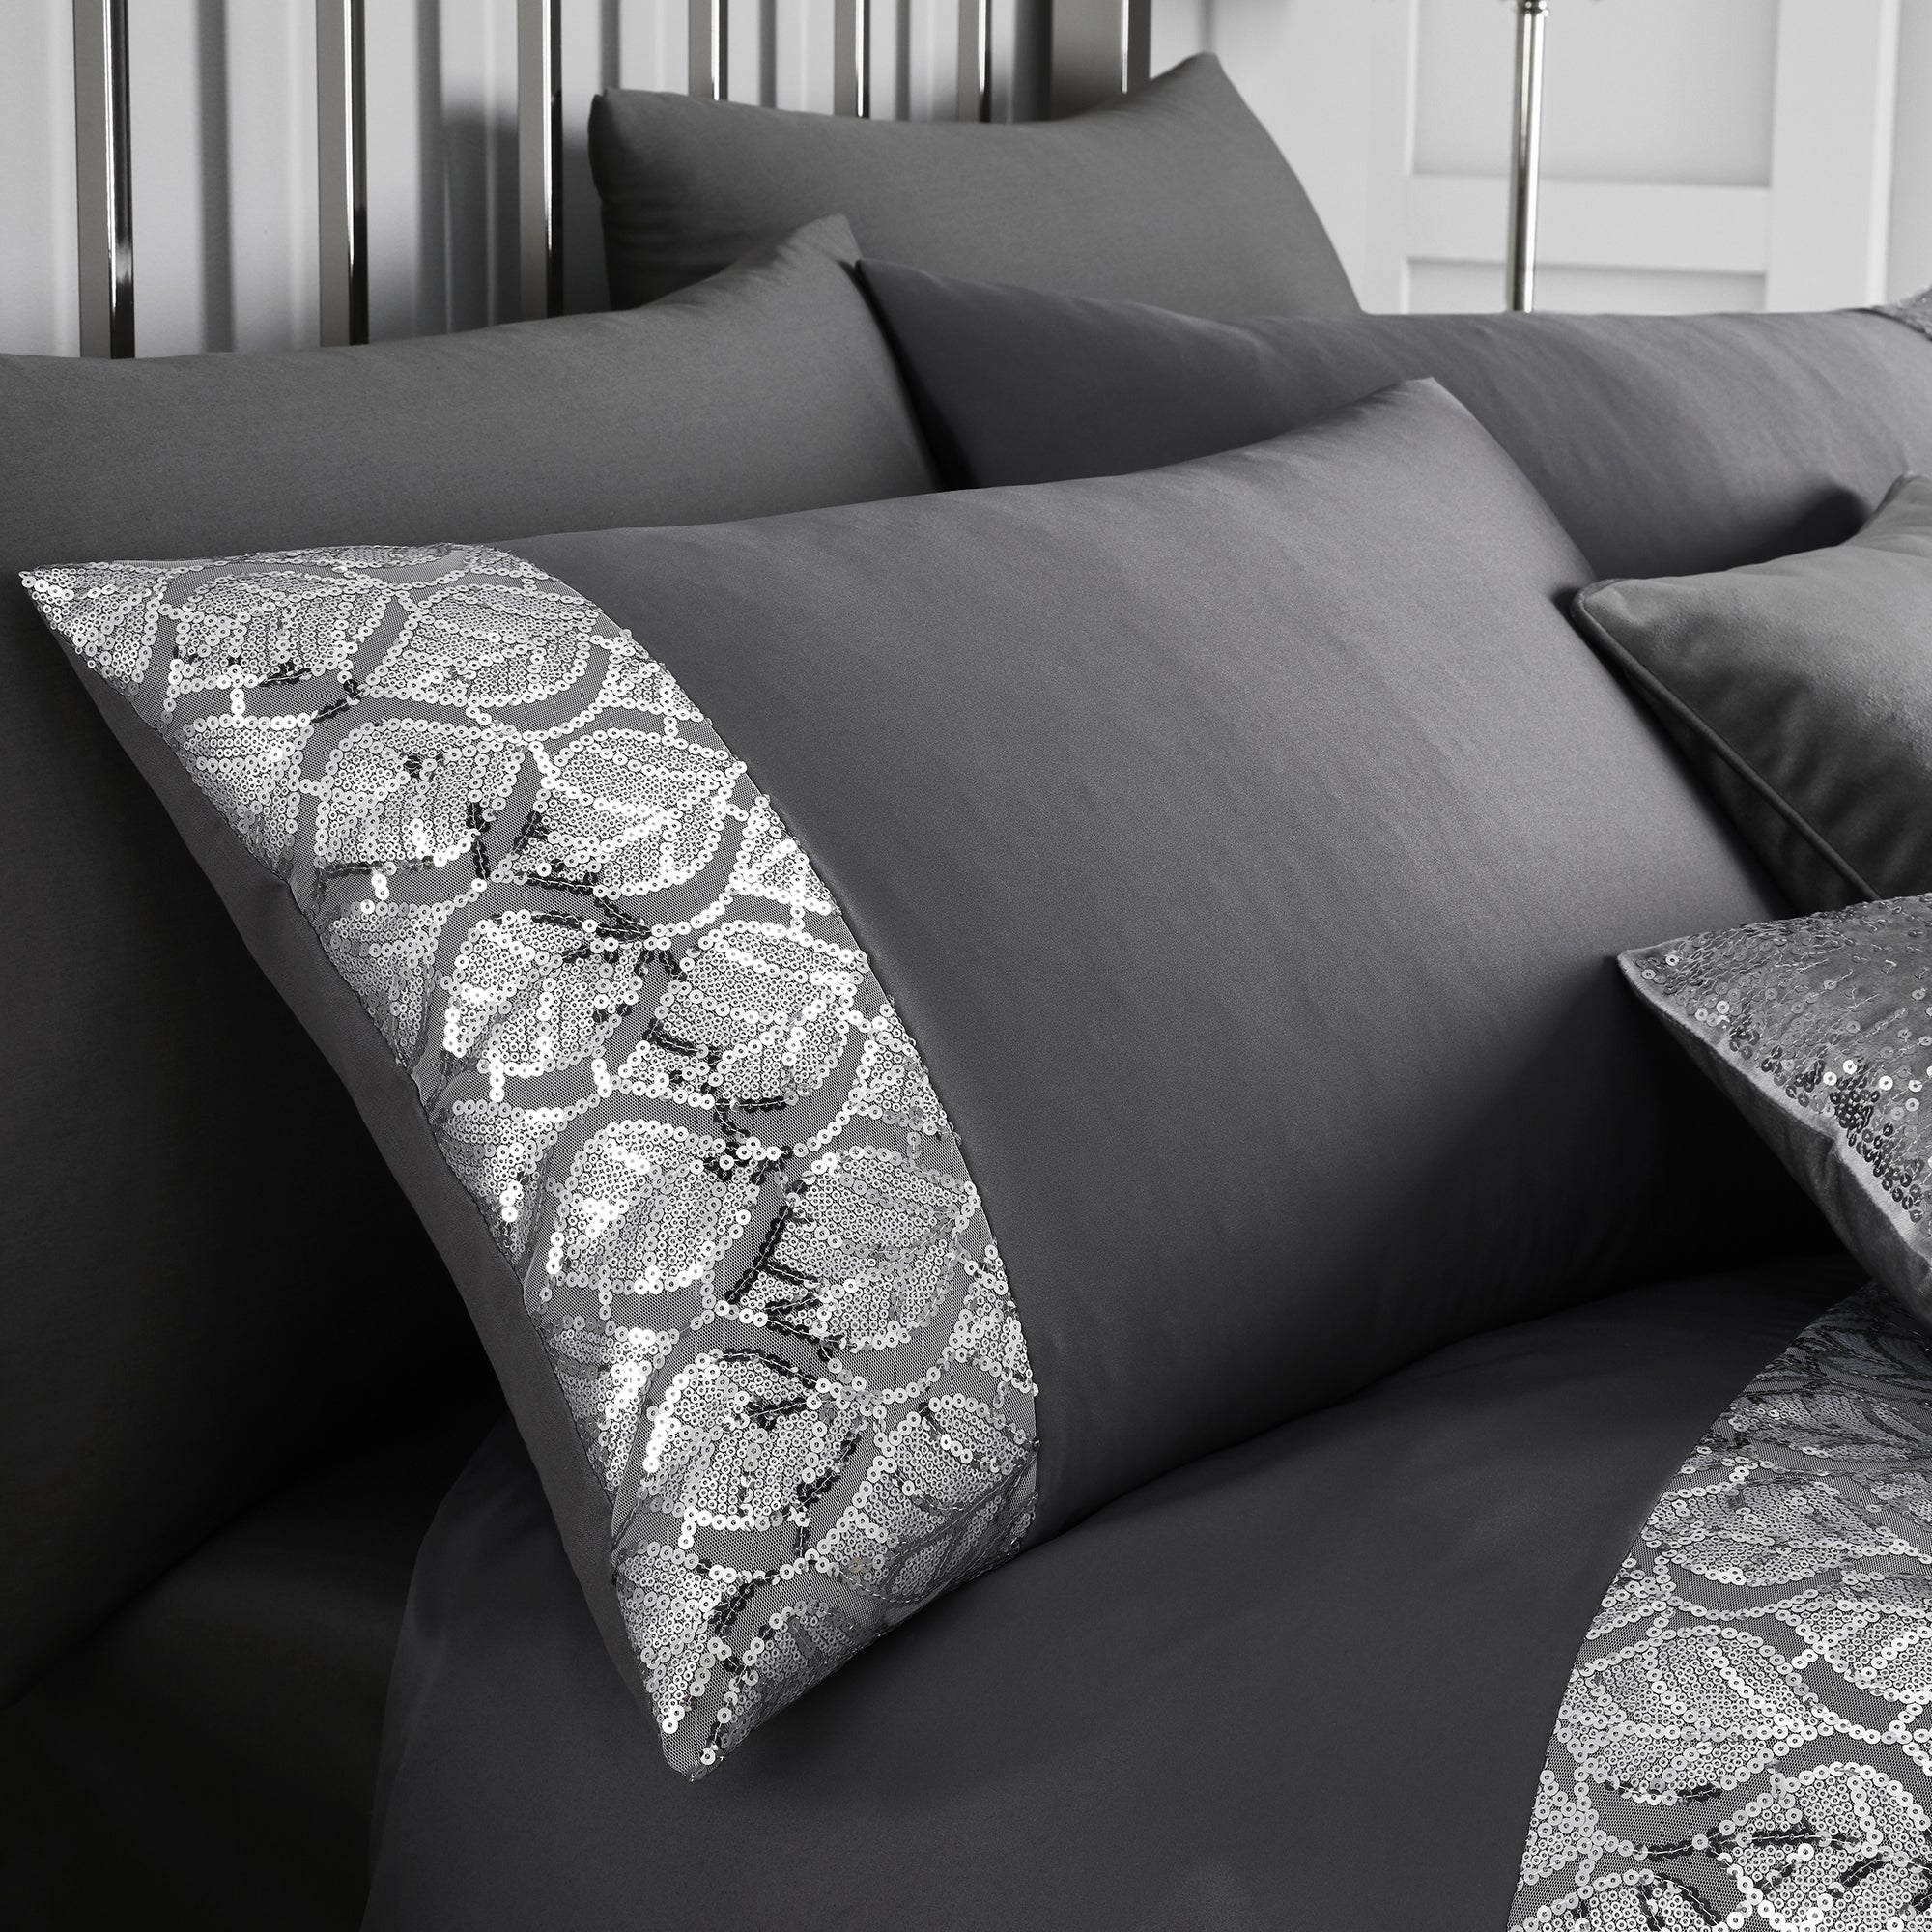 Hayworth - Sequin Leaf Trim Duvet Cover Set in Slate - By Caprice